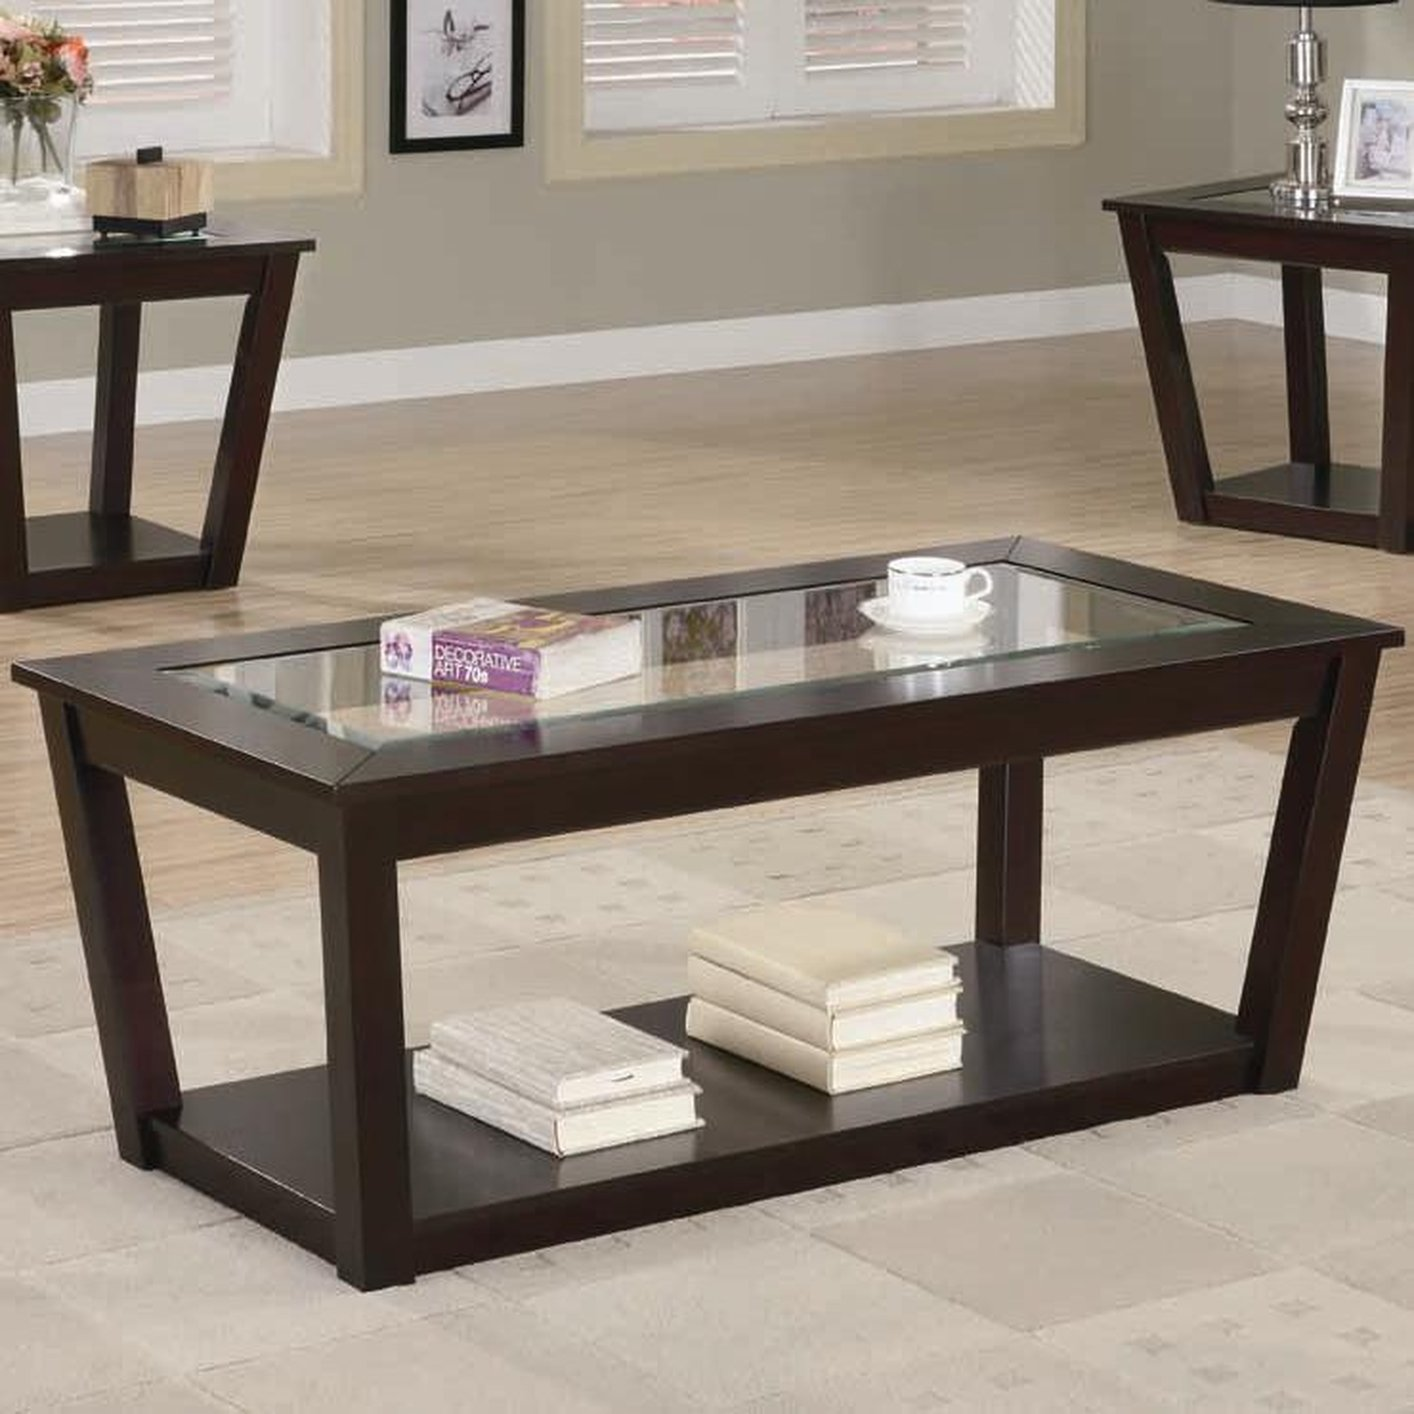 Fenmore Brown Glass Coffee Table Set Steal A Sofa Furniture